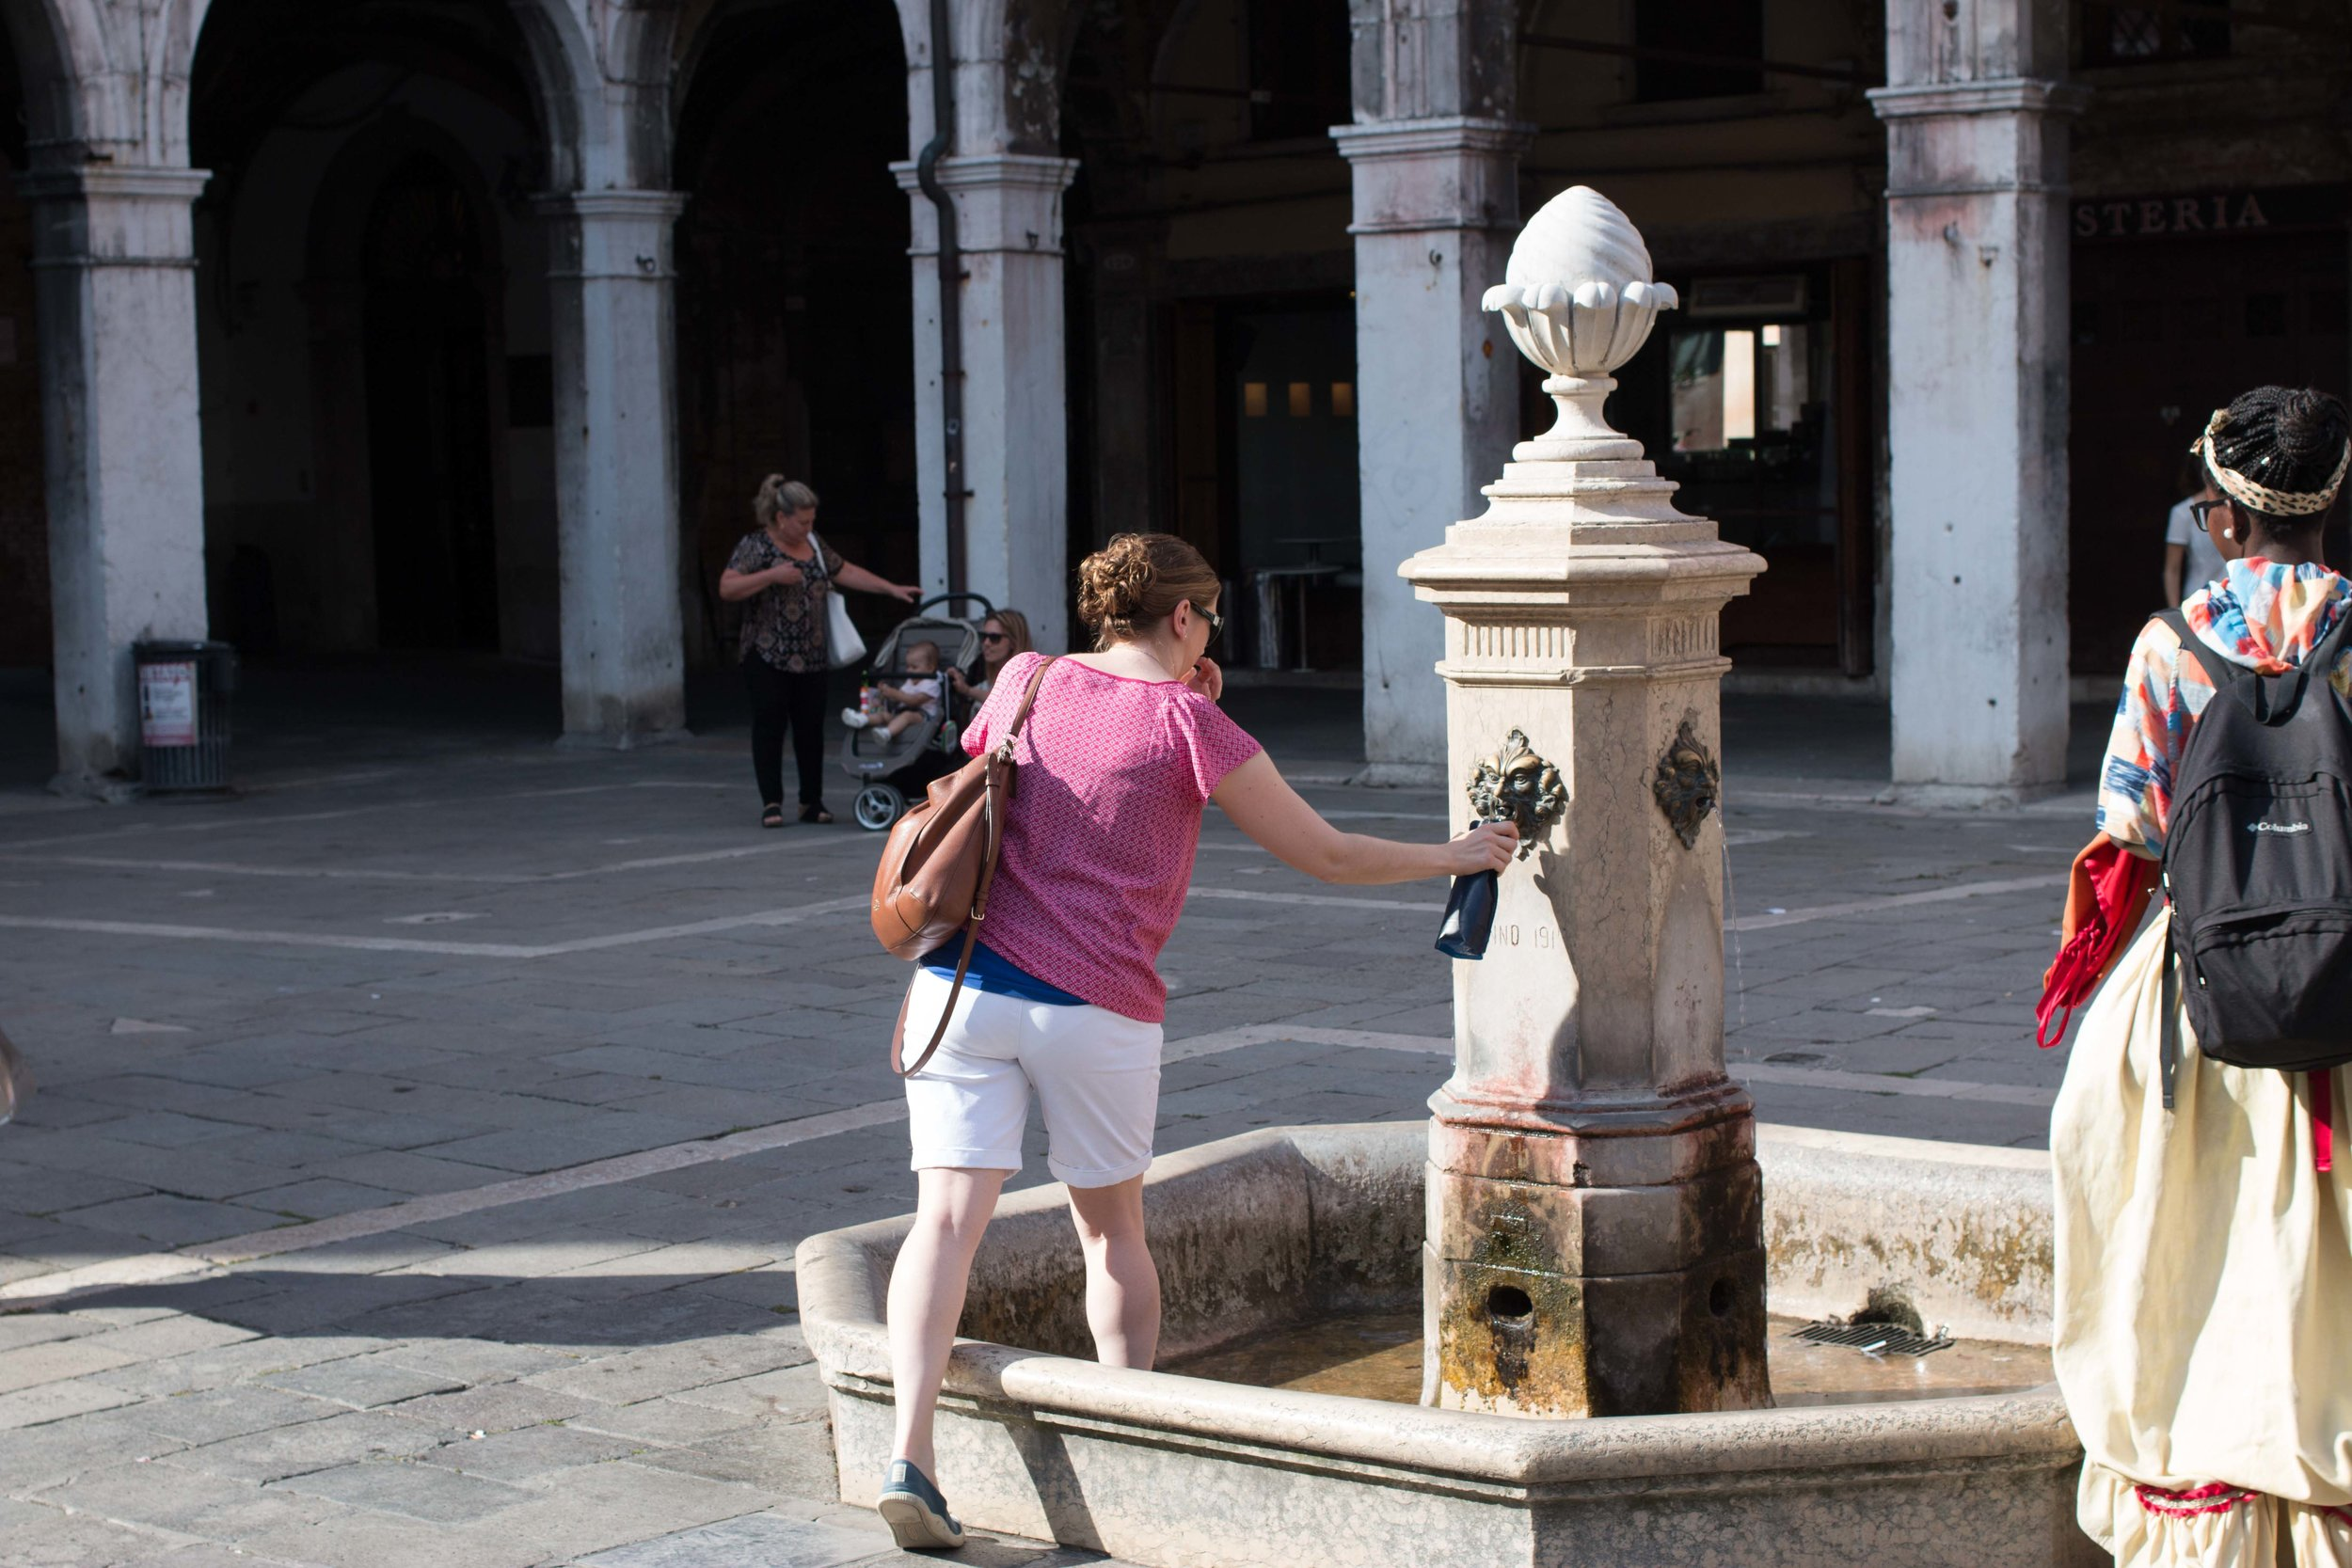 Thank god there are fountains all over Venice with free, potable water!